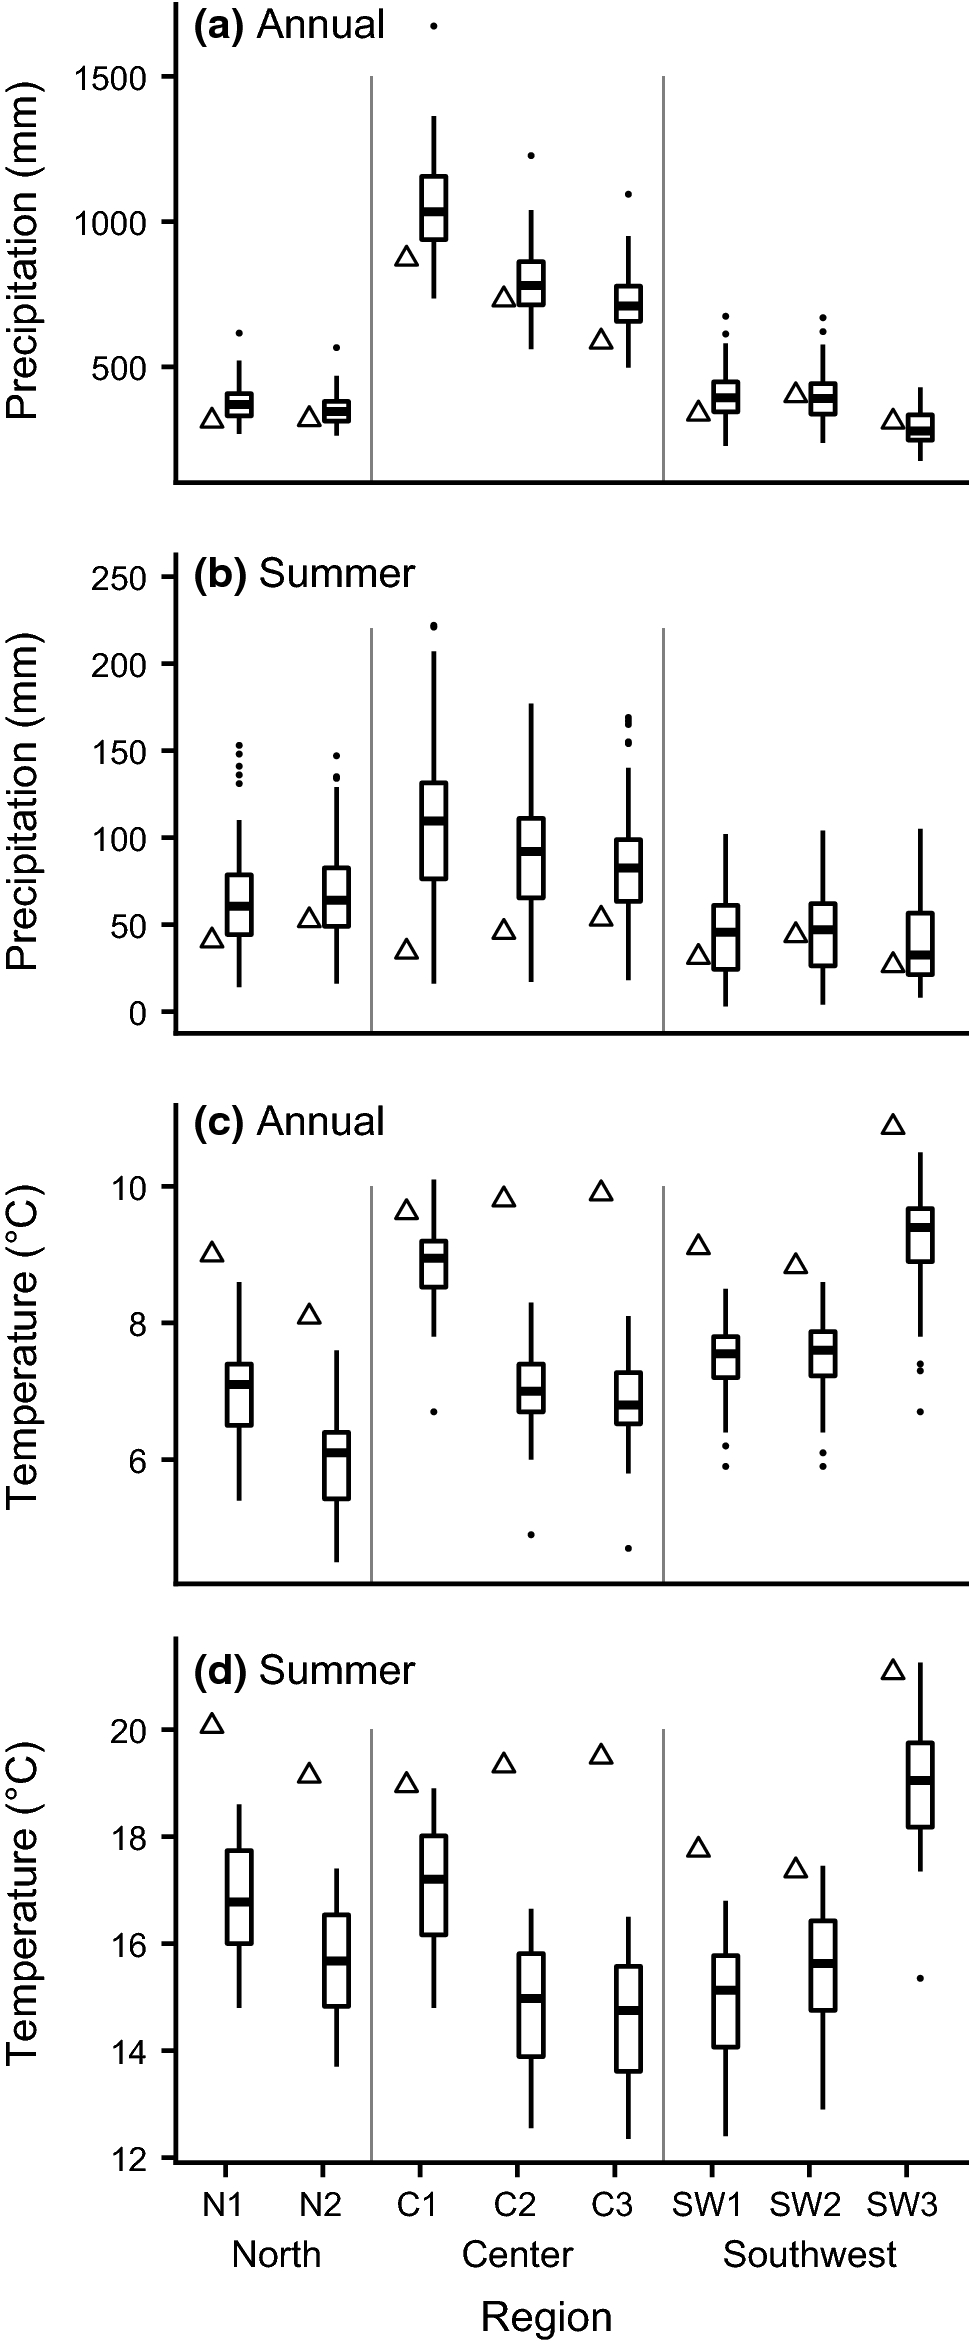 Geographic variation in reproductive assurance of Clarkia